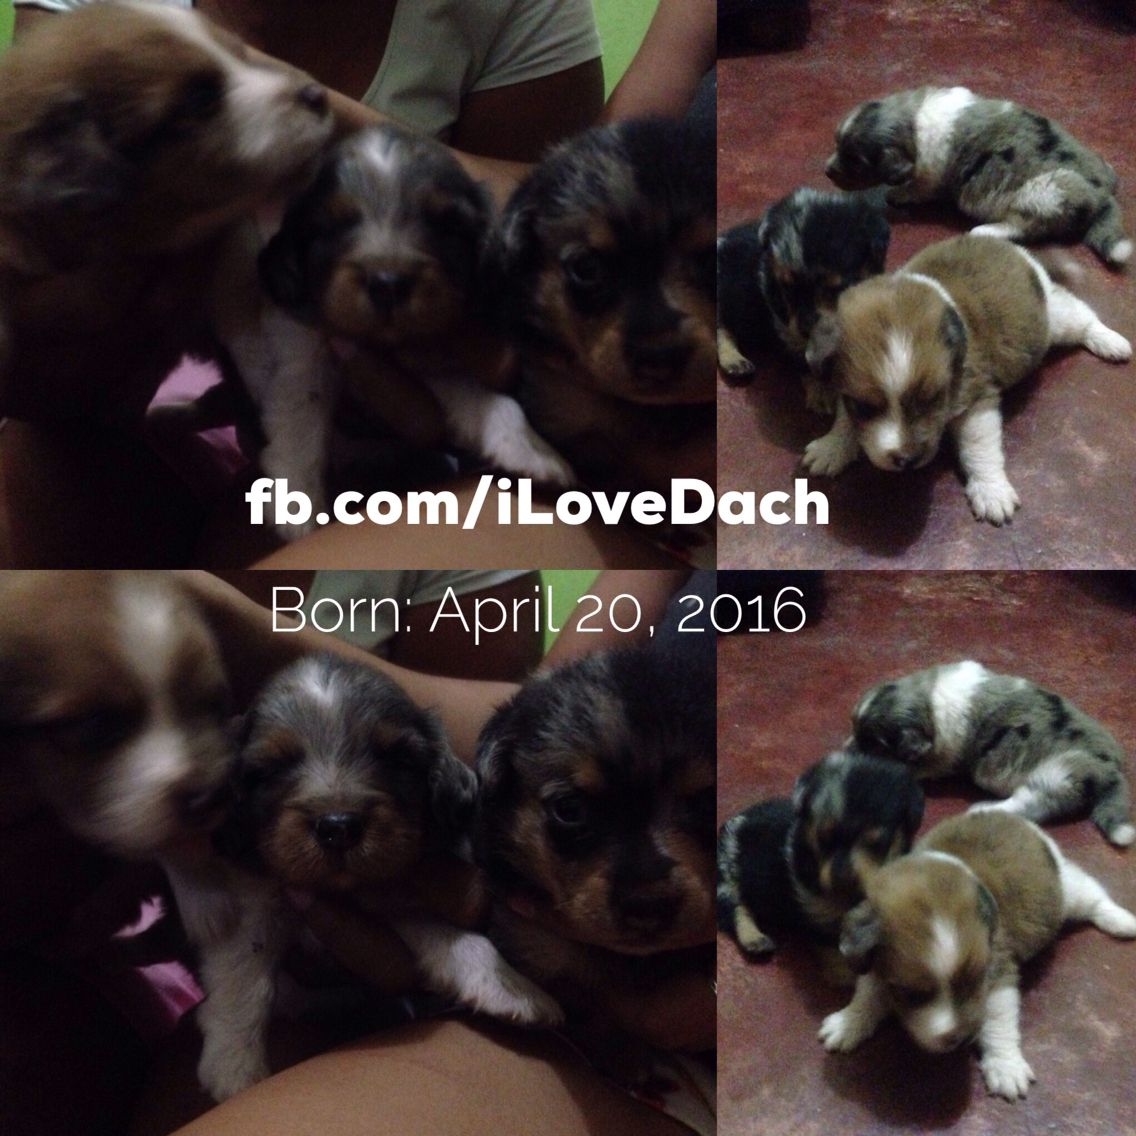 For Sale Dachshund Puppies Location Butuan City For Inquiries Message Us At Www Fb Com Ilovedach Shoppingph Onlineshoppin Dachshund Puppies Butuan City